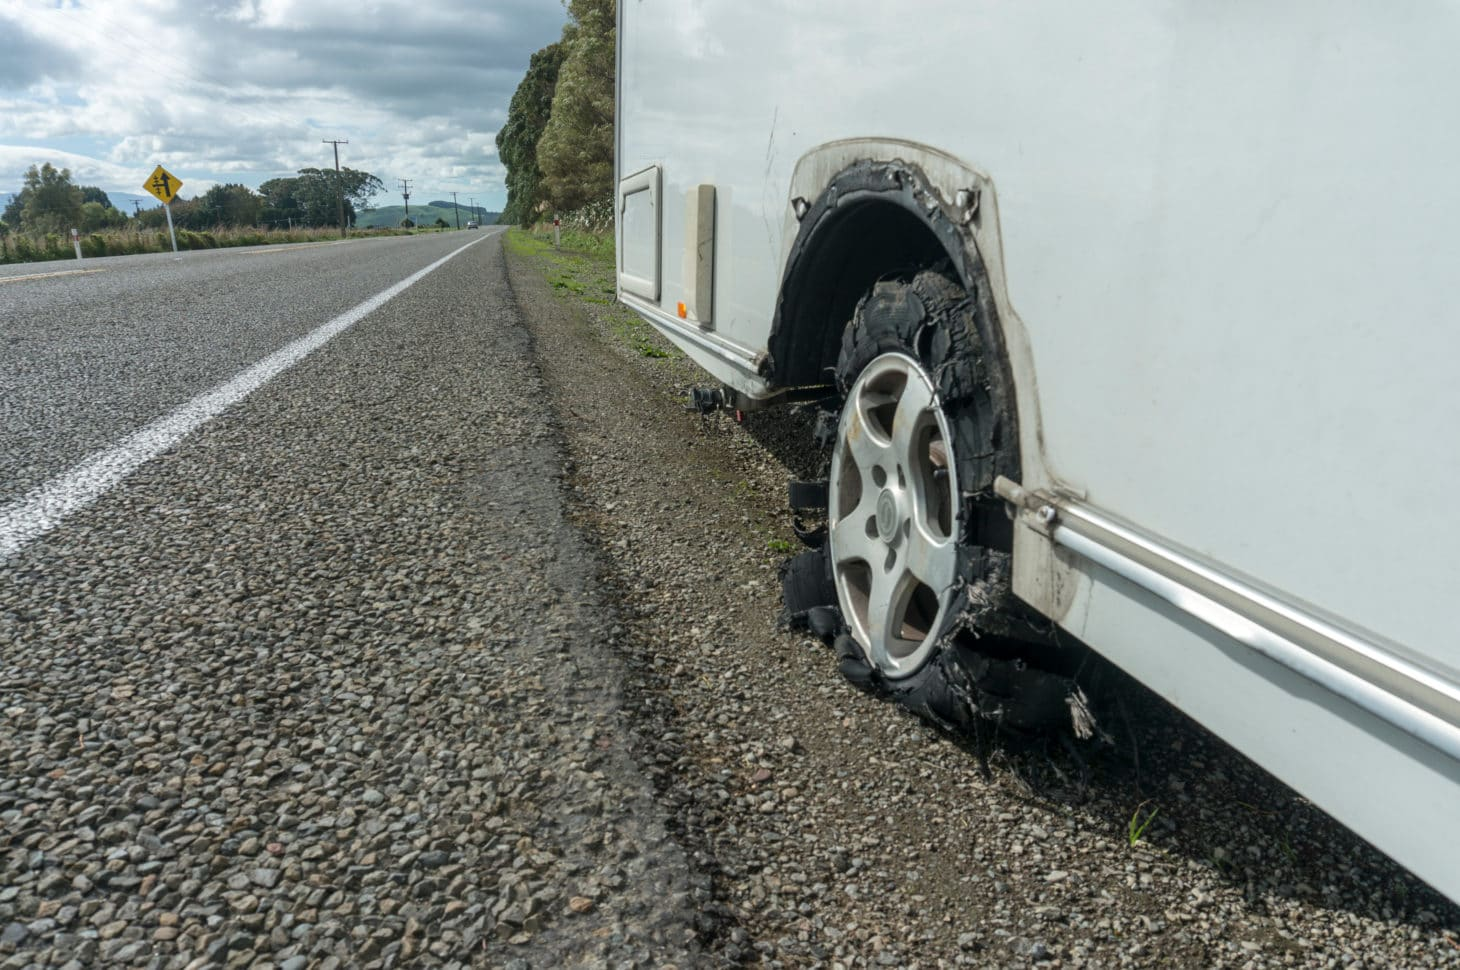 Blown out tire on an RV pulled over on side of the road